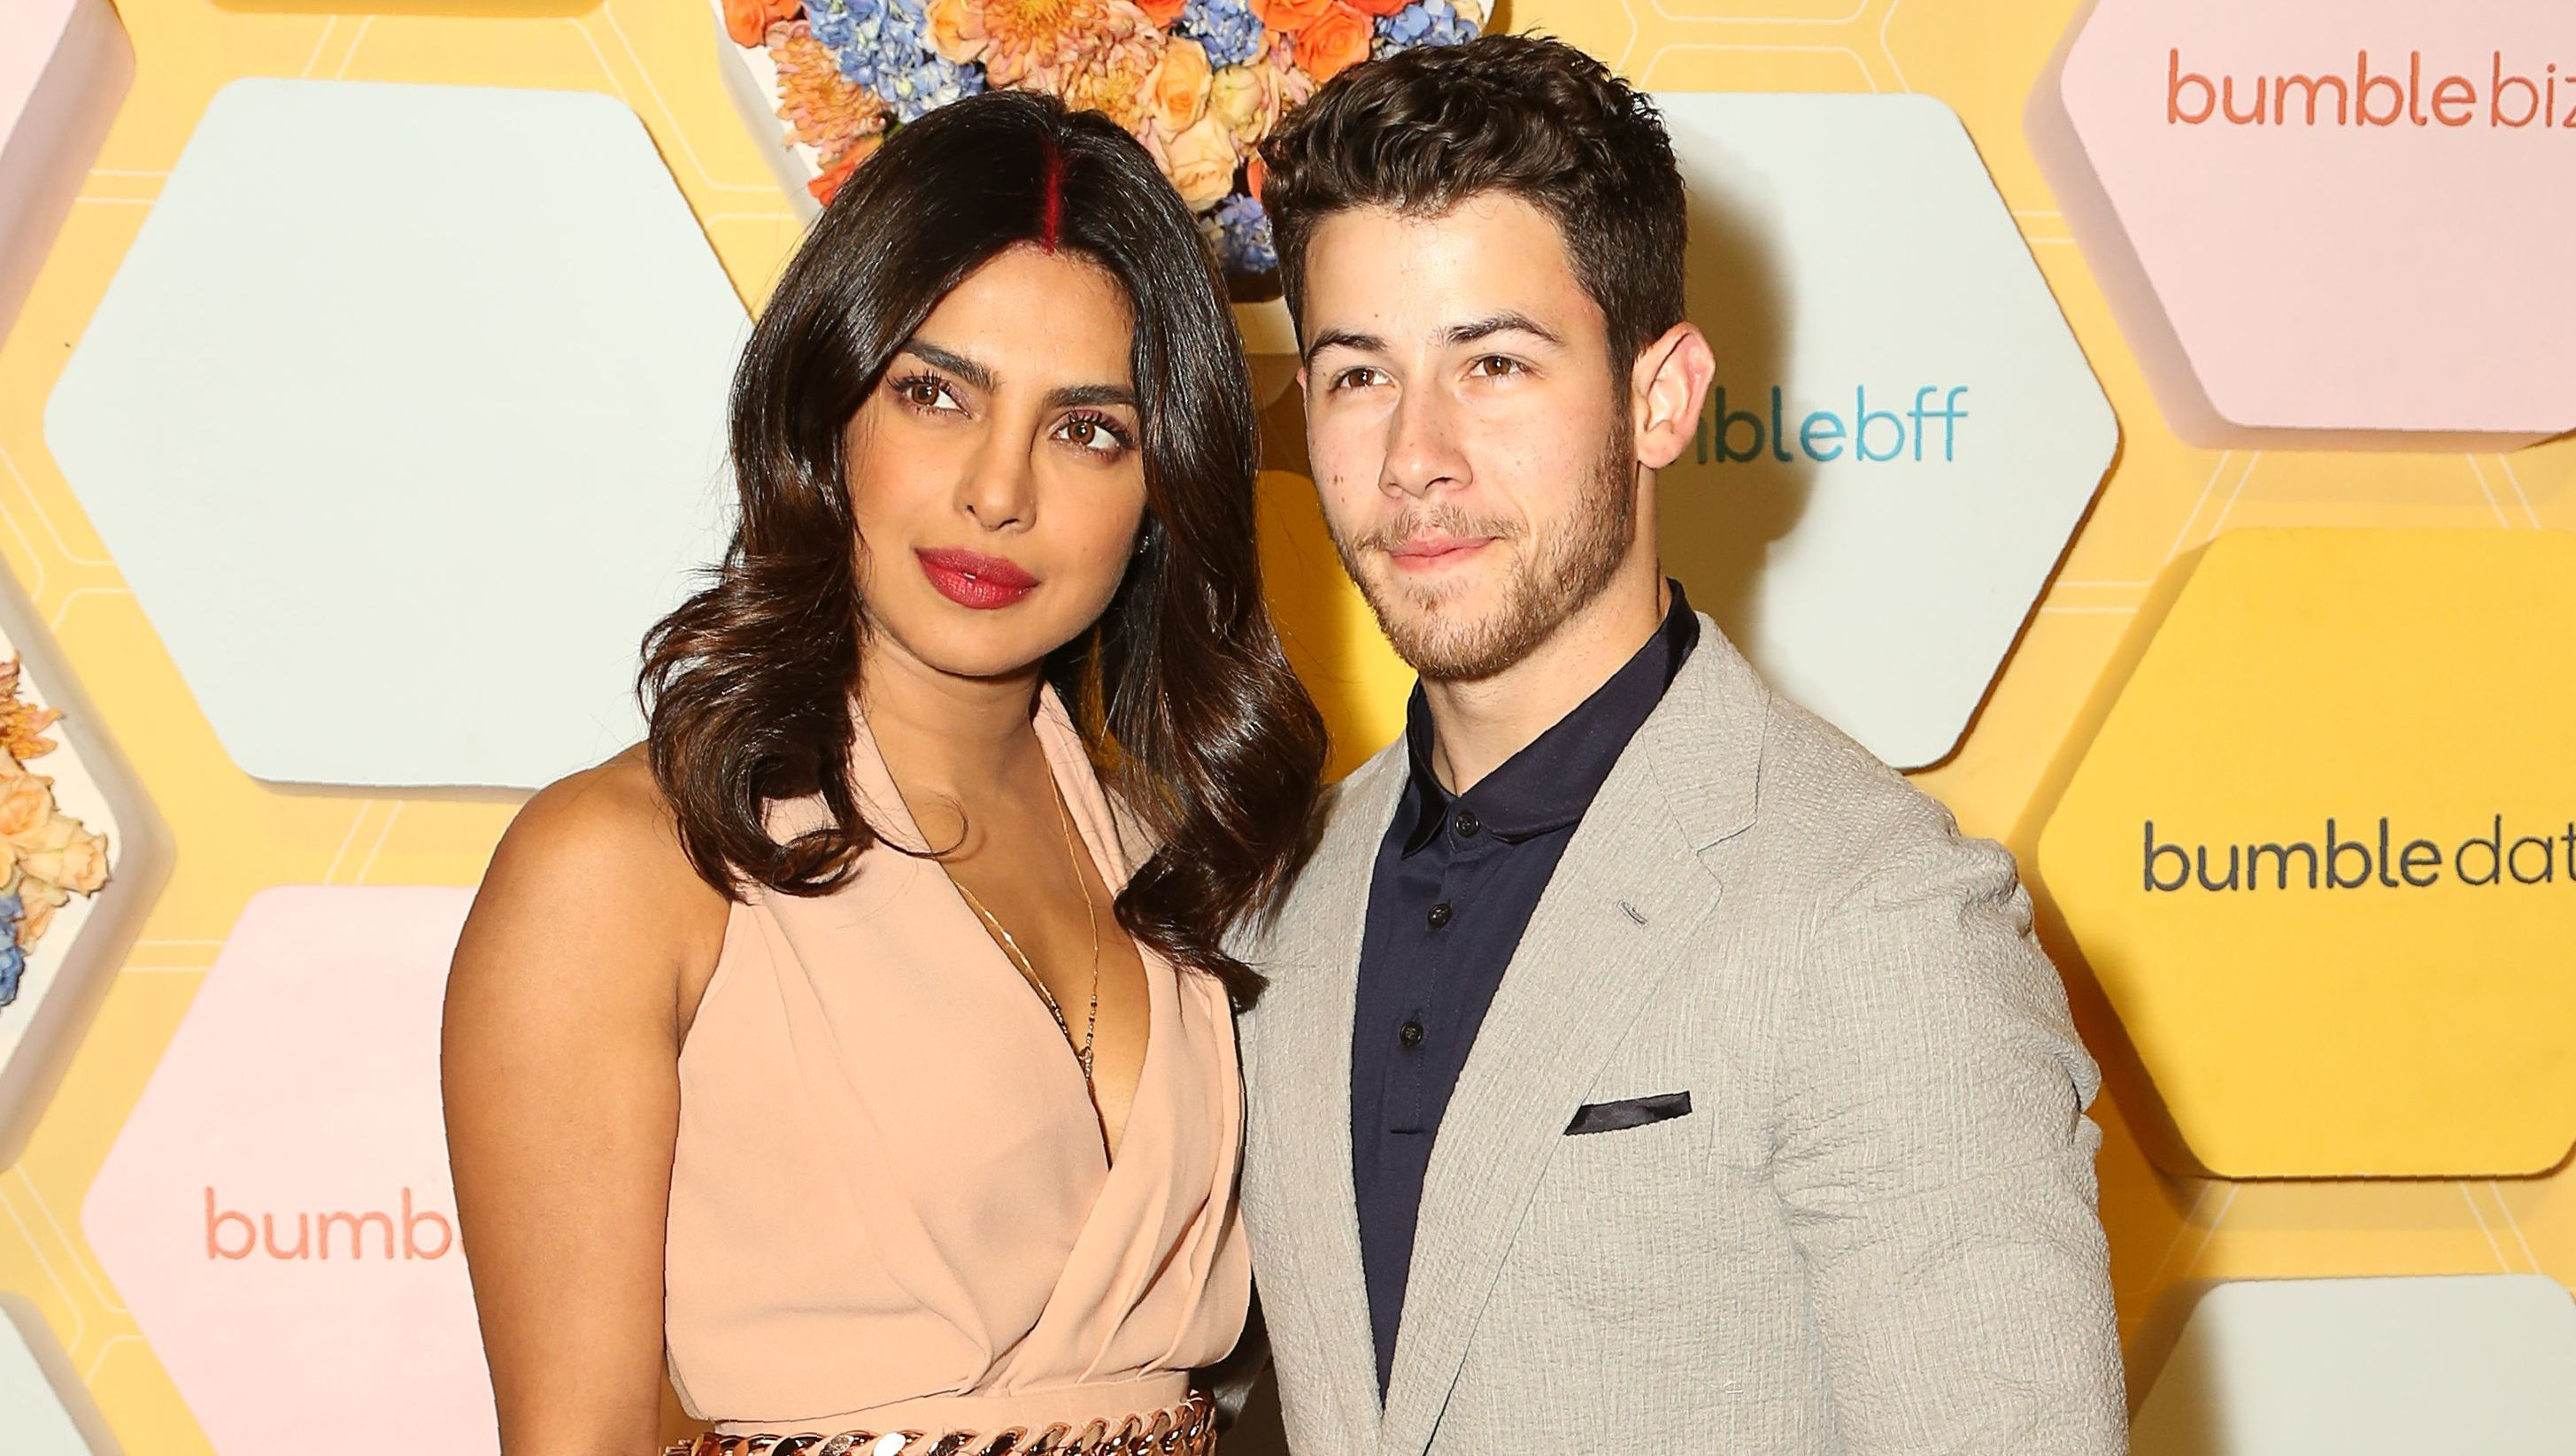 Priyanka Chopra Changes Name On Instagram